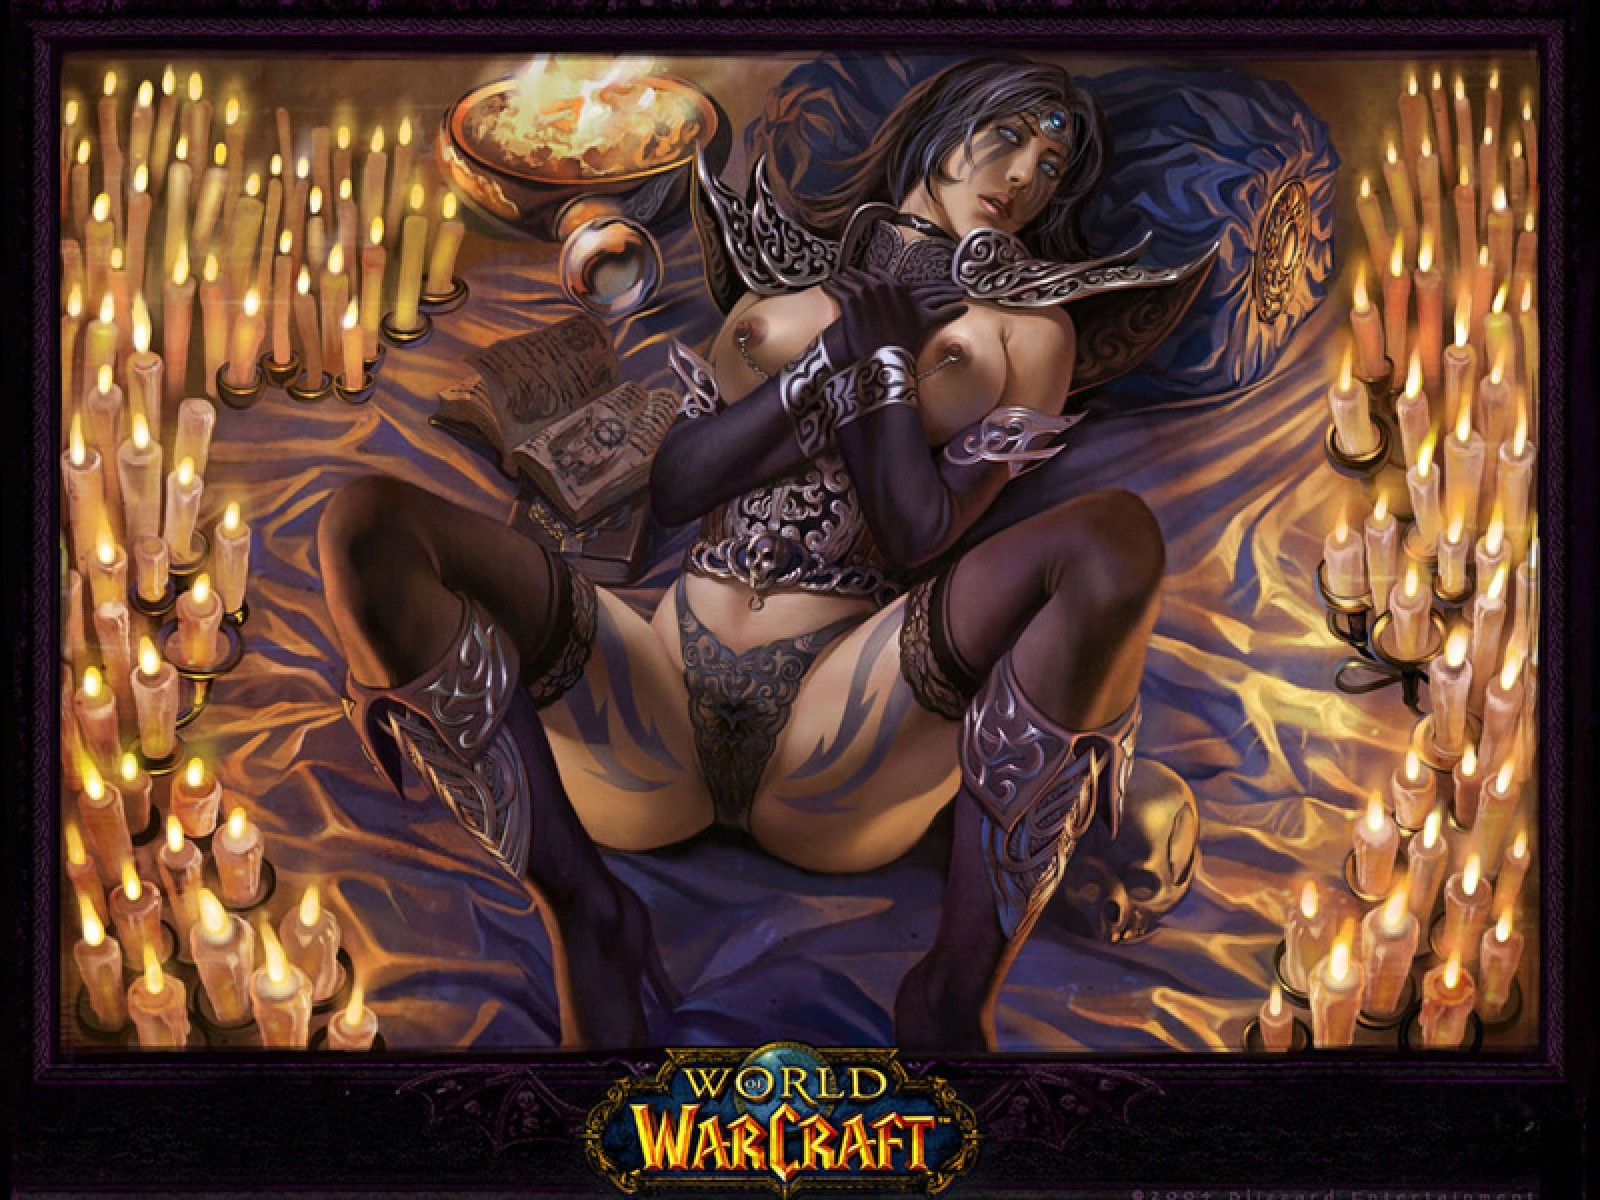 Sexy girl World of Warcraft art erotic picture